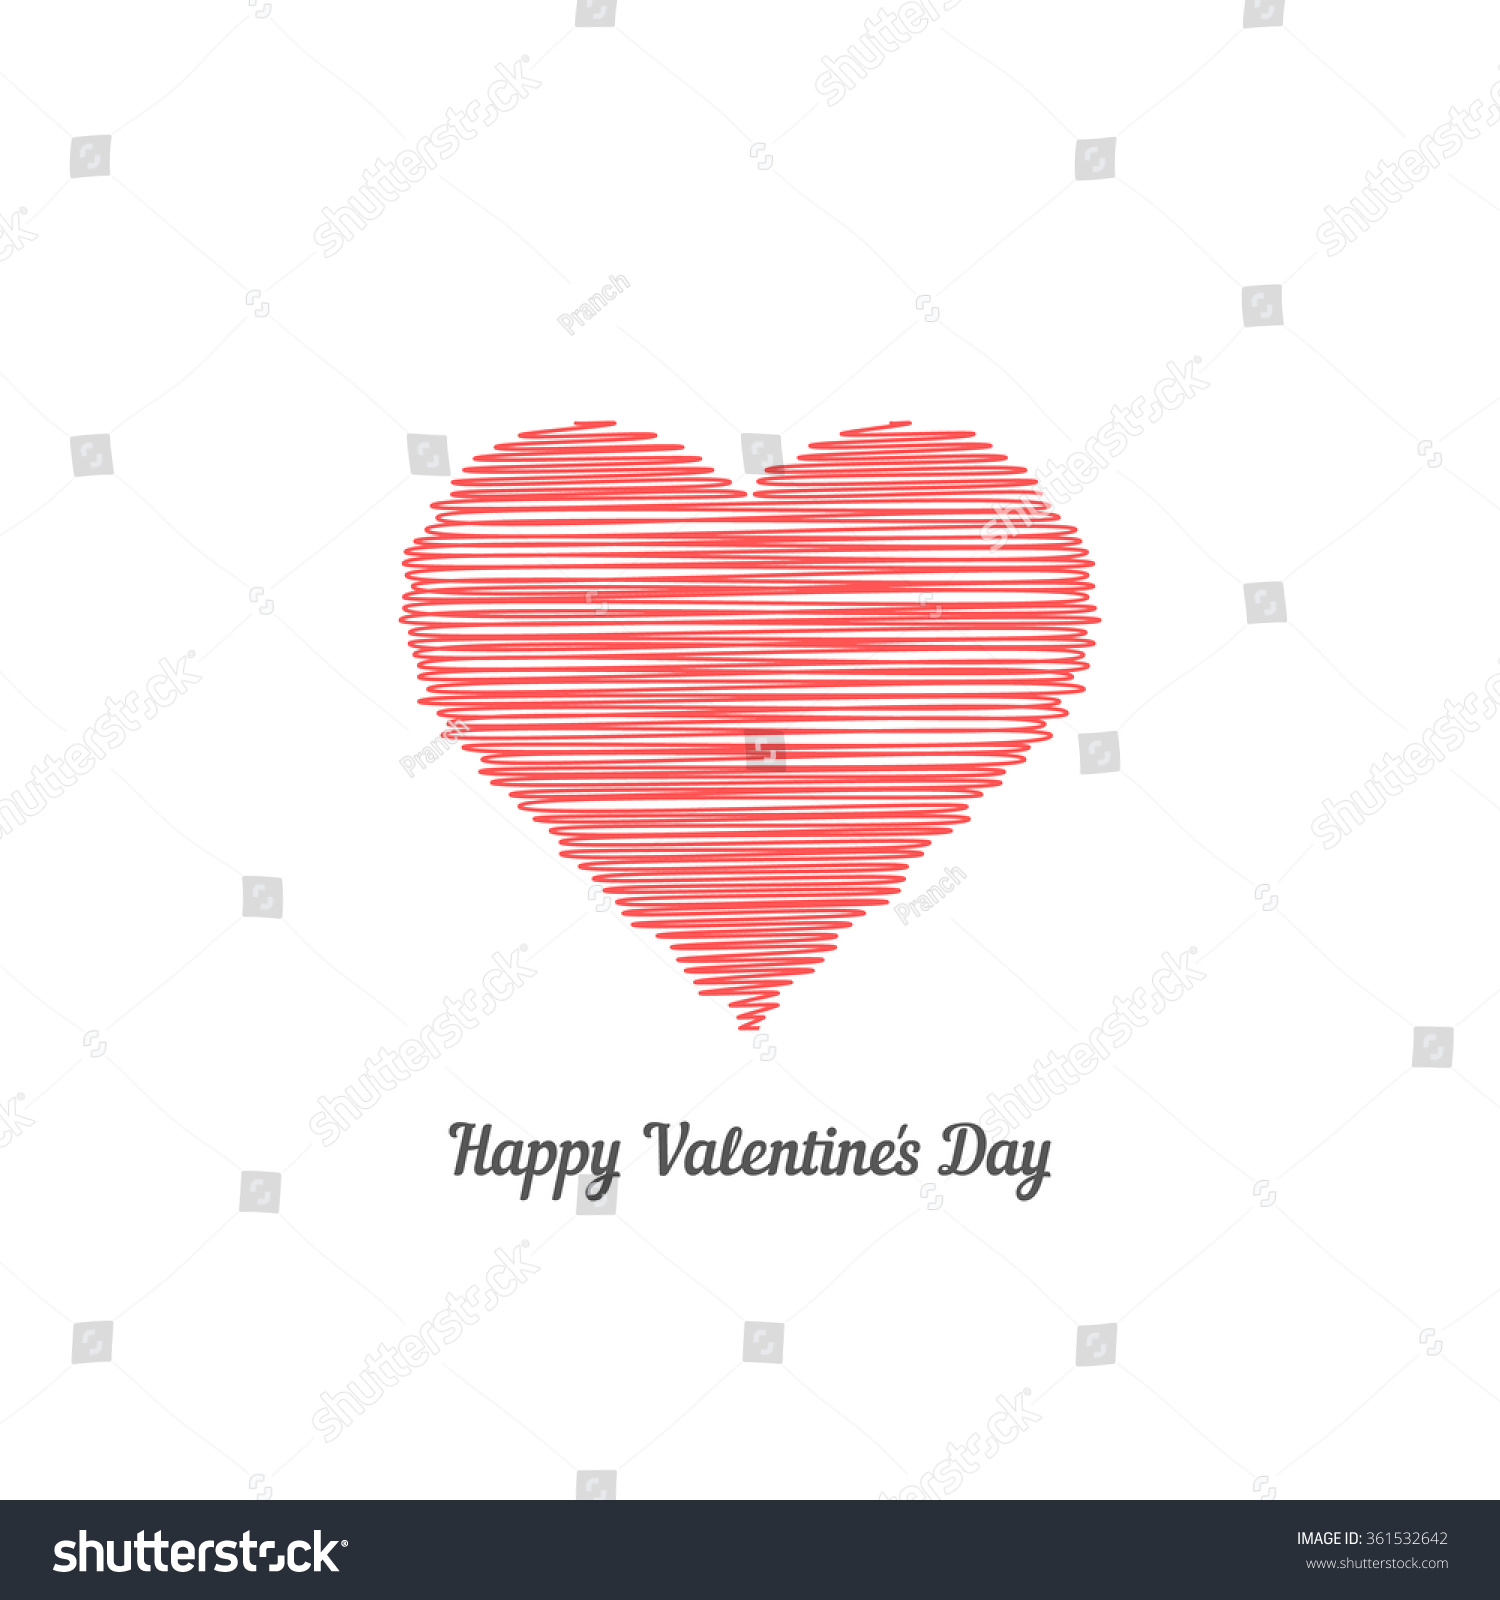 red scribble heart like happy valentine stock vector 361532642